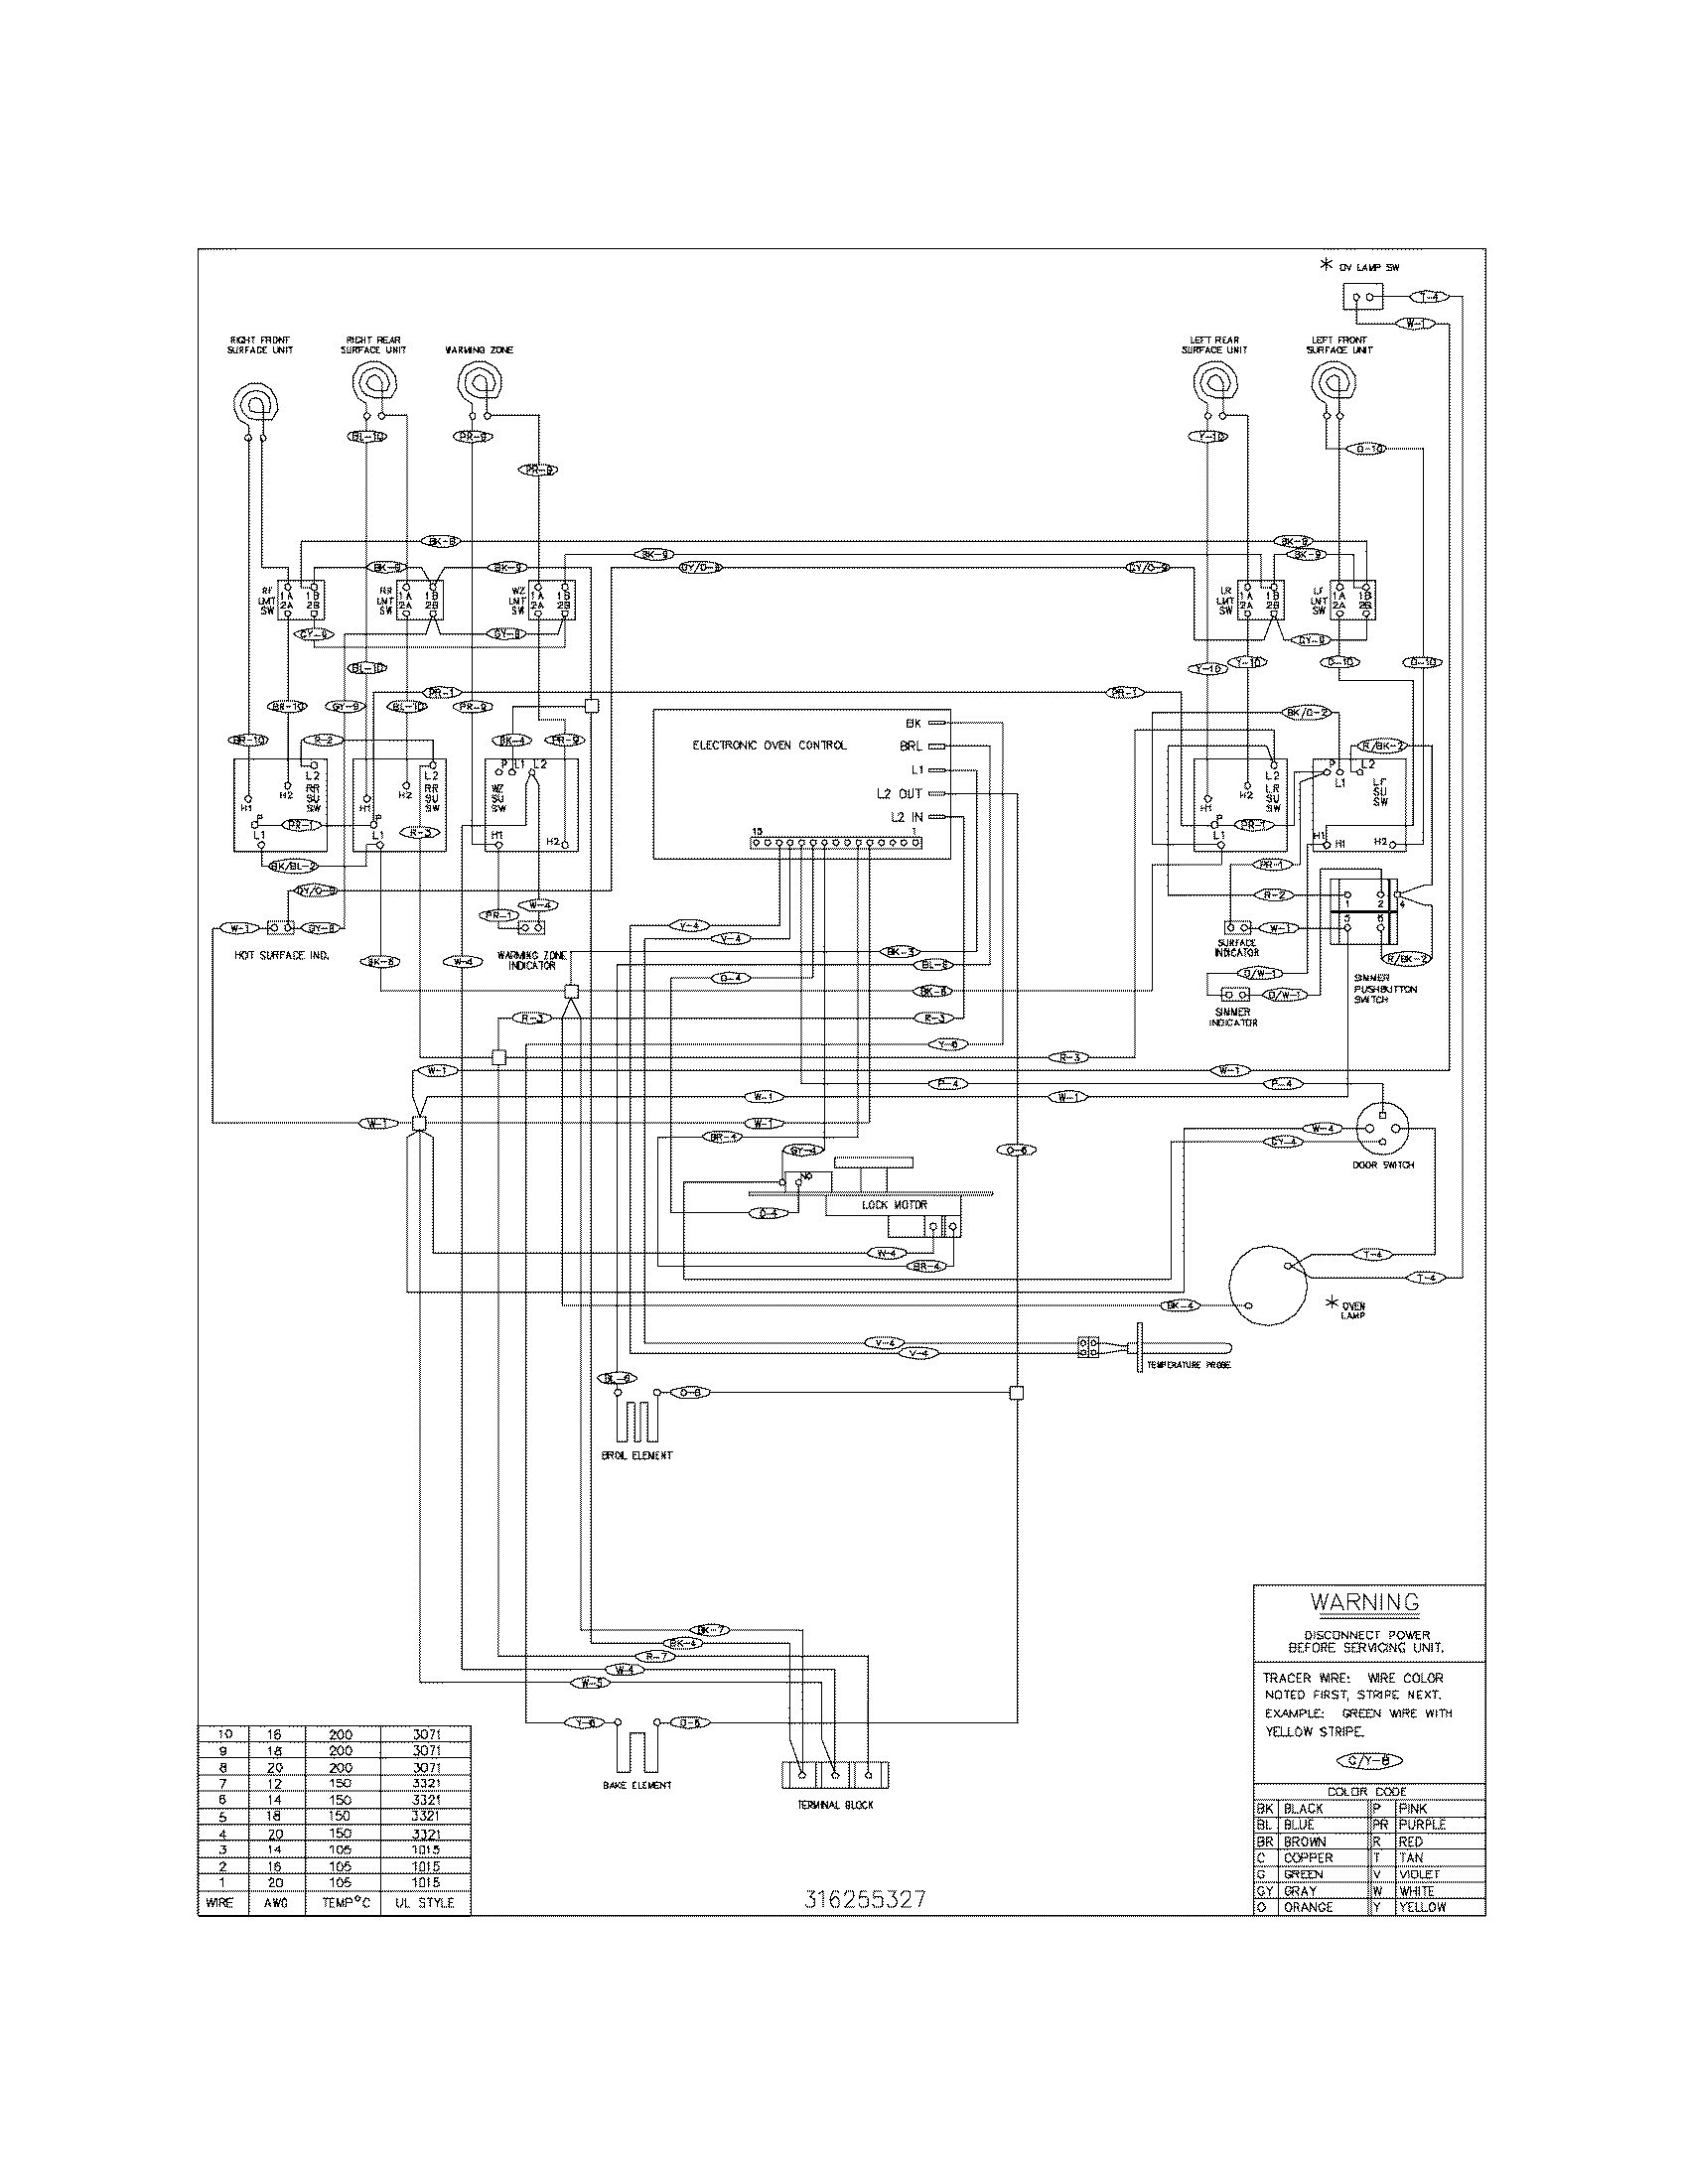 Magic Chef Refrigerator Wiring Diagram Free Engine Dryer Door Switch Amana Efcaviation